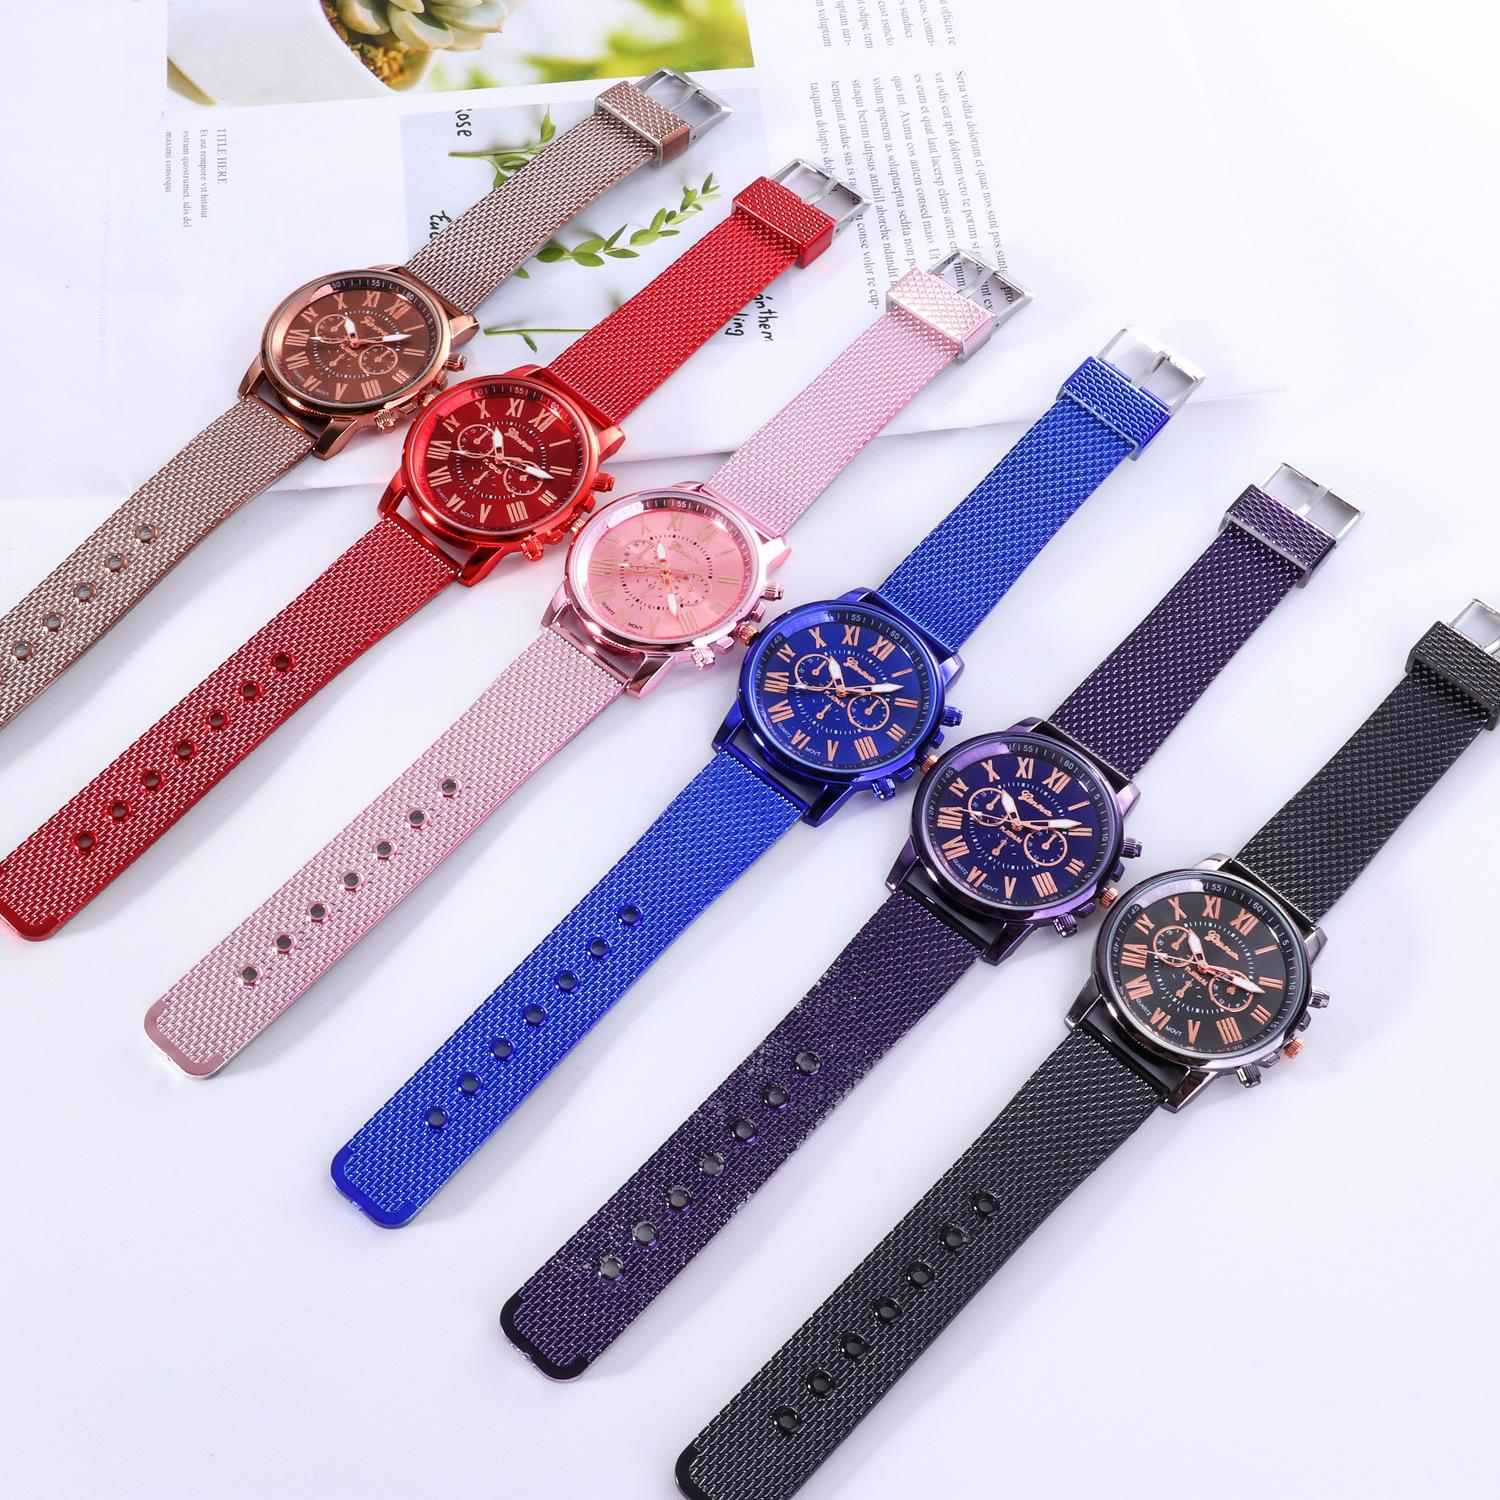 Luxury GENEVA watch Plastic Mesh Belt Waist watches for Women Men Brand Dual Colors Rubber Strape Watch 2019 Casual Sports Business Style